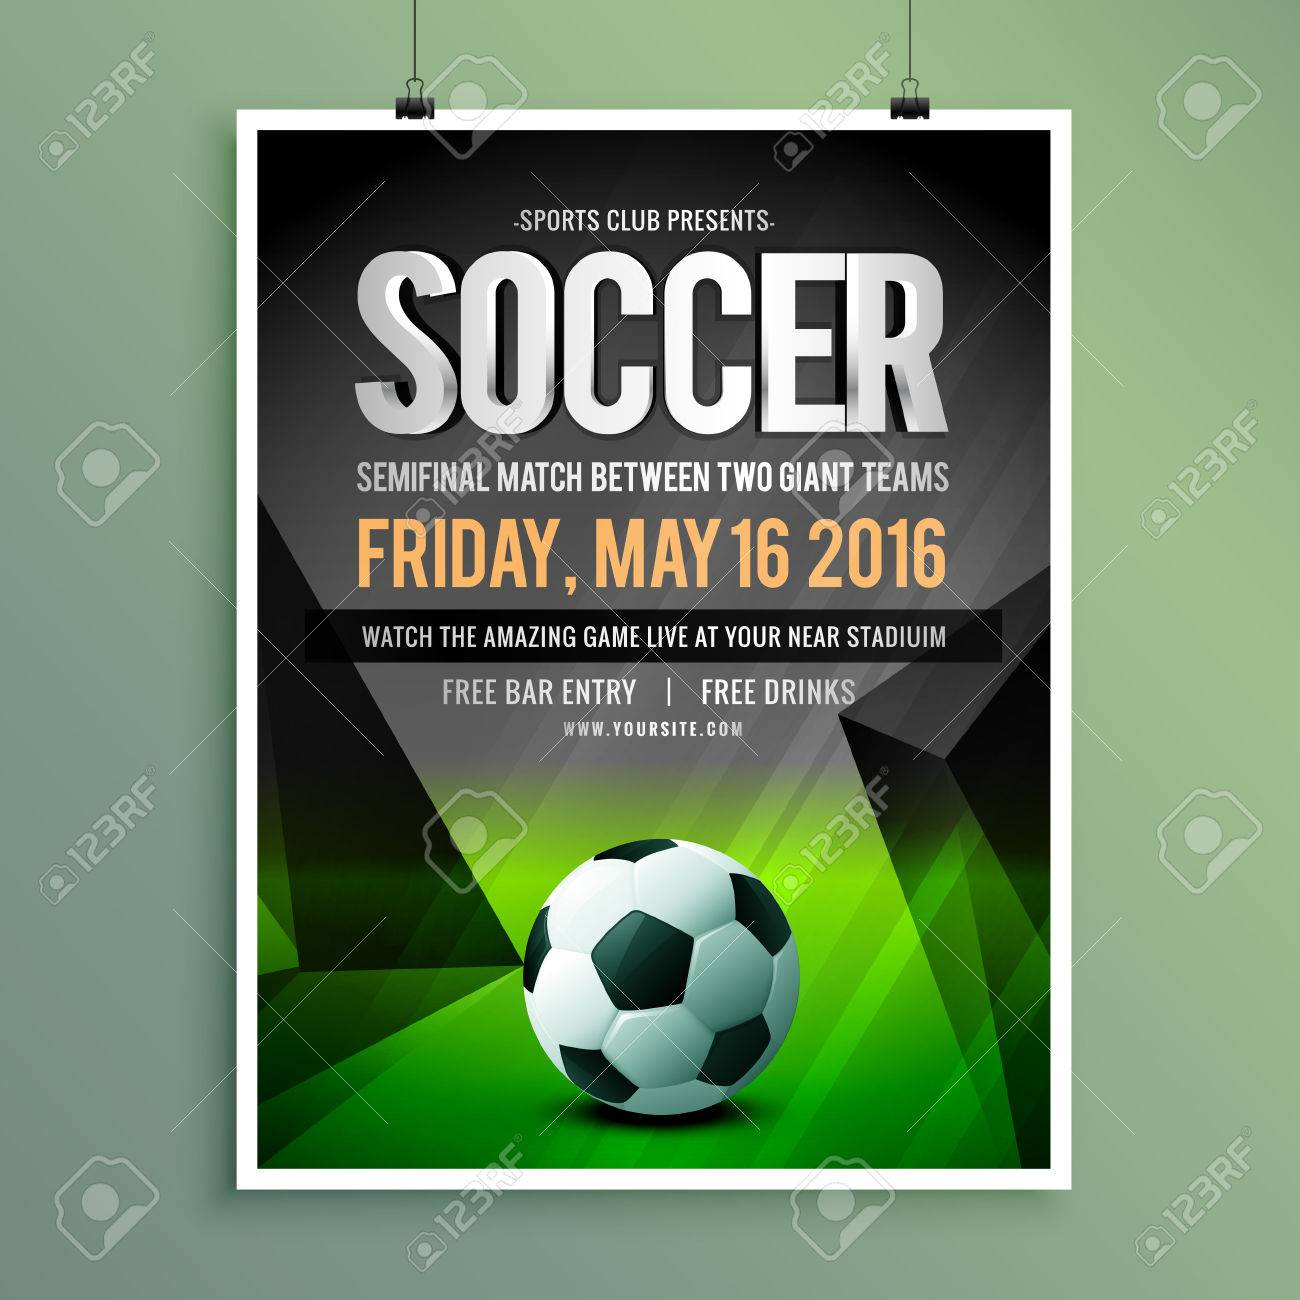 Soccer Game Flyer Template Design Royalty Free Cliparts Vectors – Soccer Flyer Template